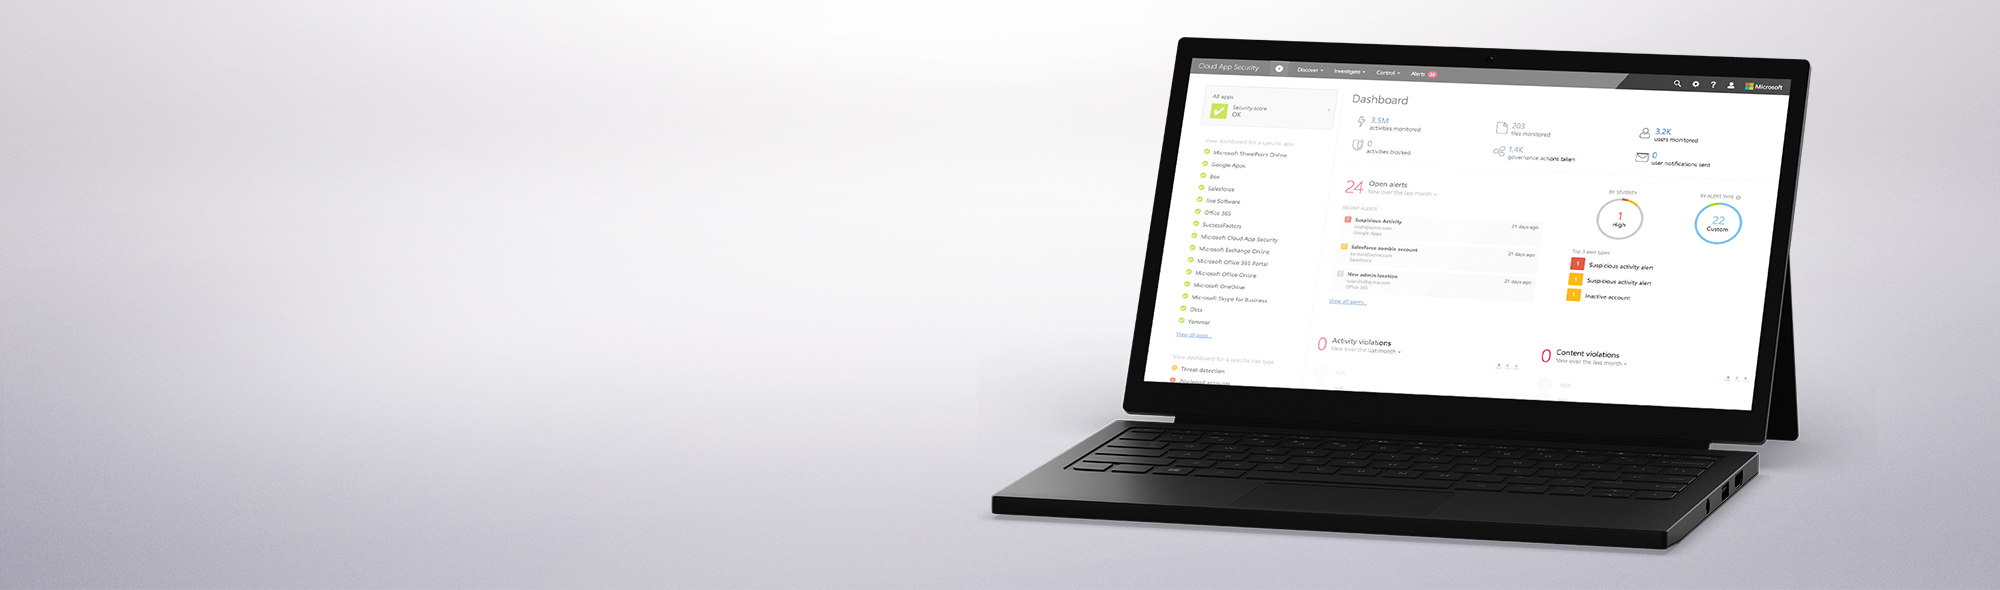 Windows tablet with keyboard.